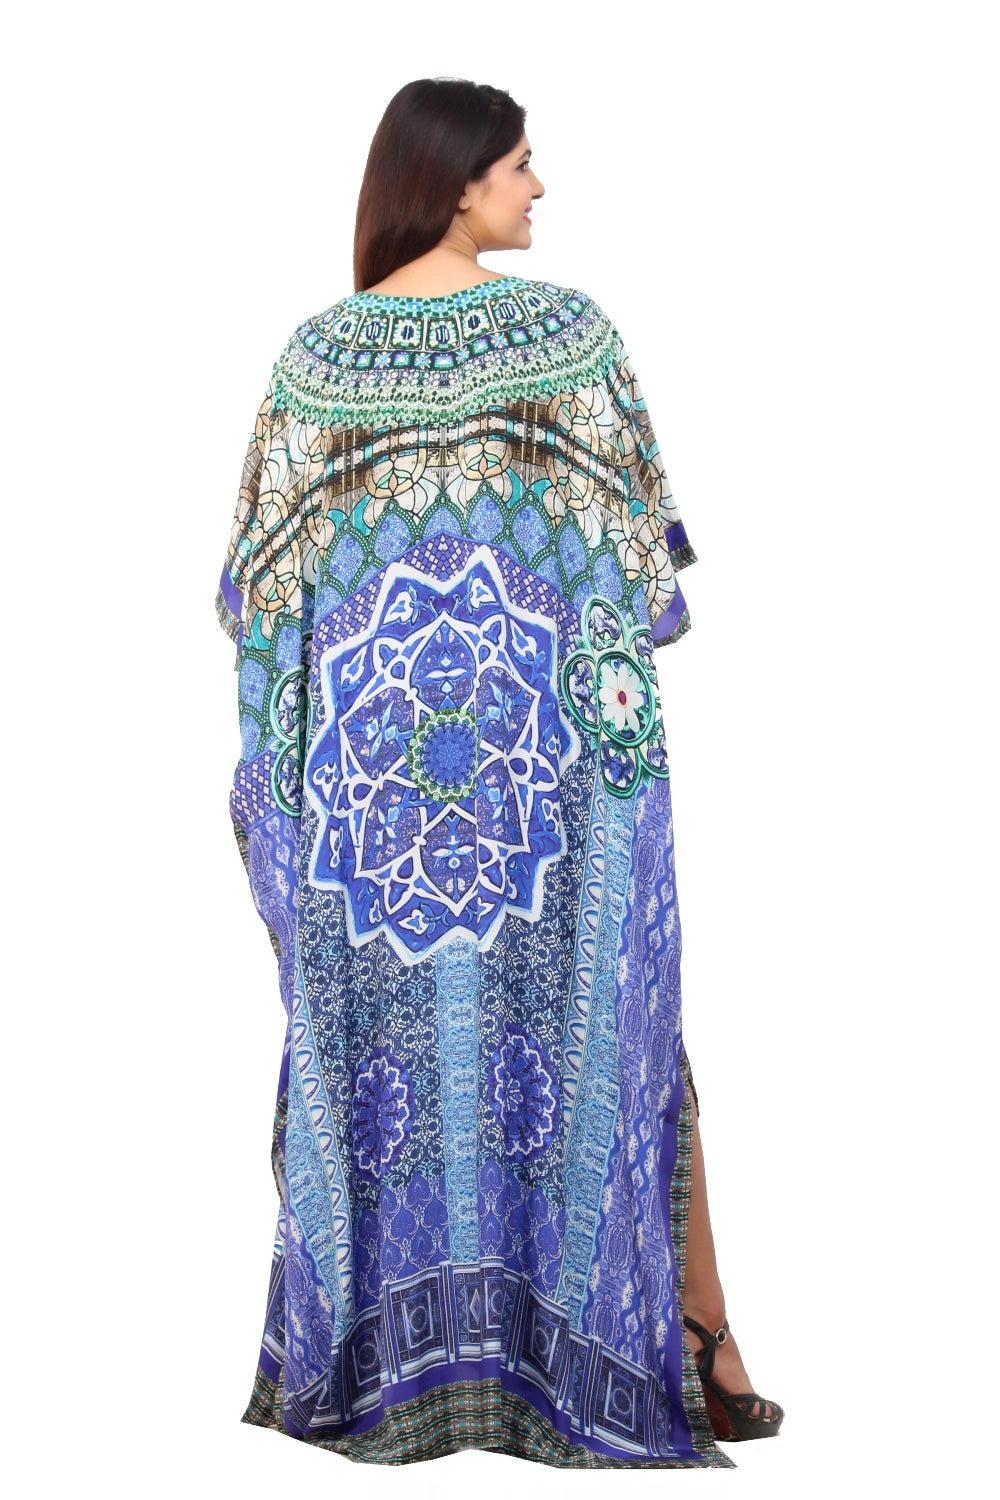 Bluish Geometric print Silk Kaftan gown with pearls embellishments and side cuts for evening galas pool party kaftan - Silk kaftan